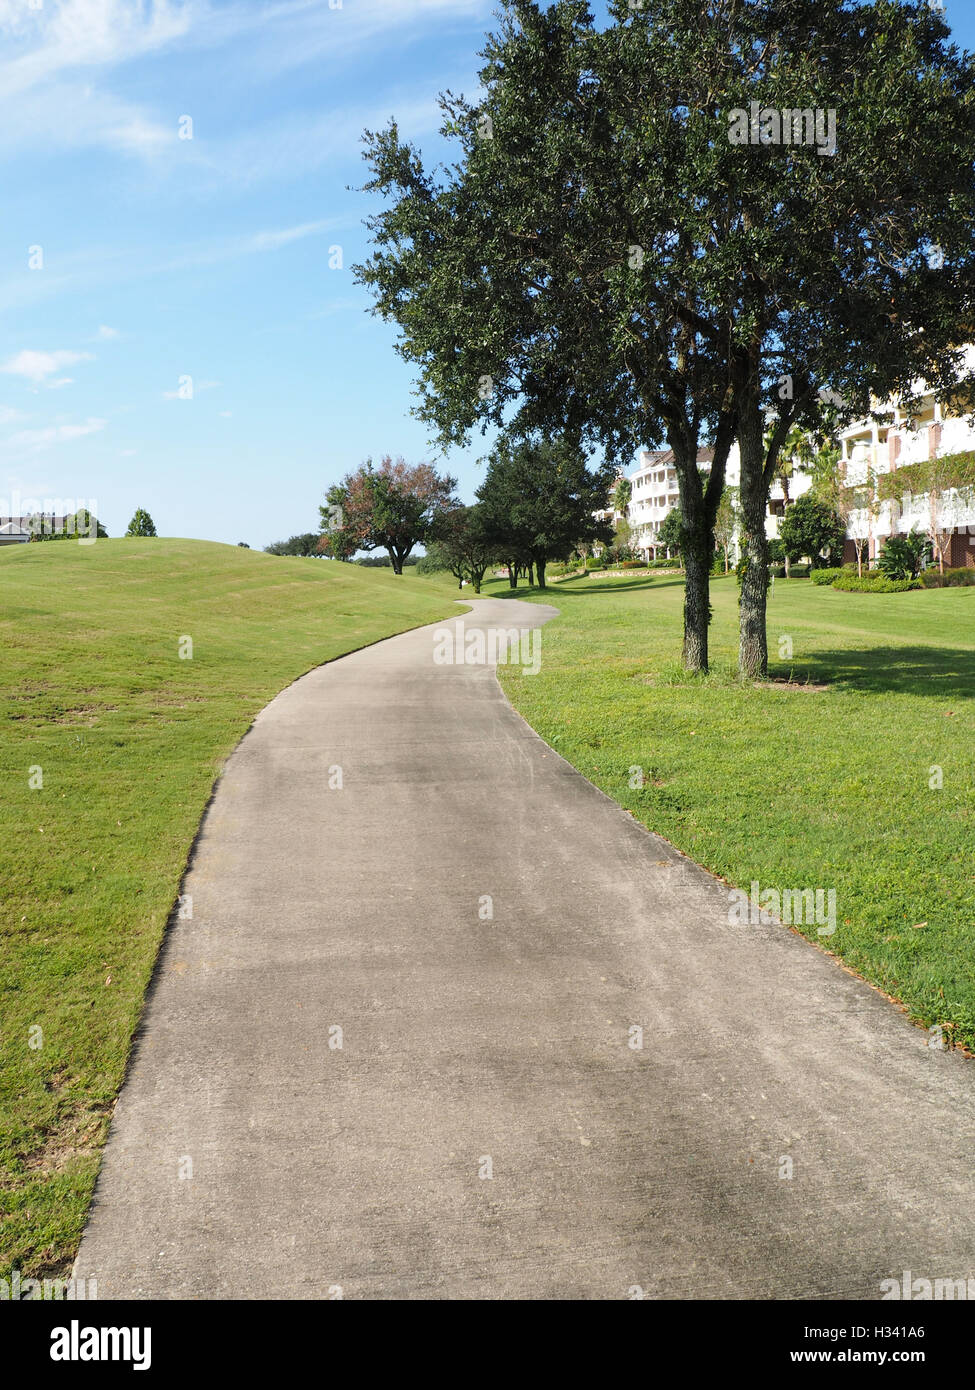 macadam path or walkway by a large grass area and trees - Stock Image